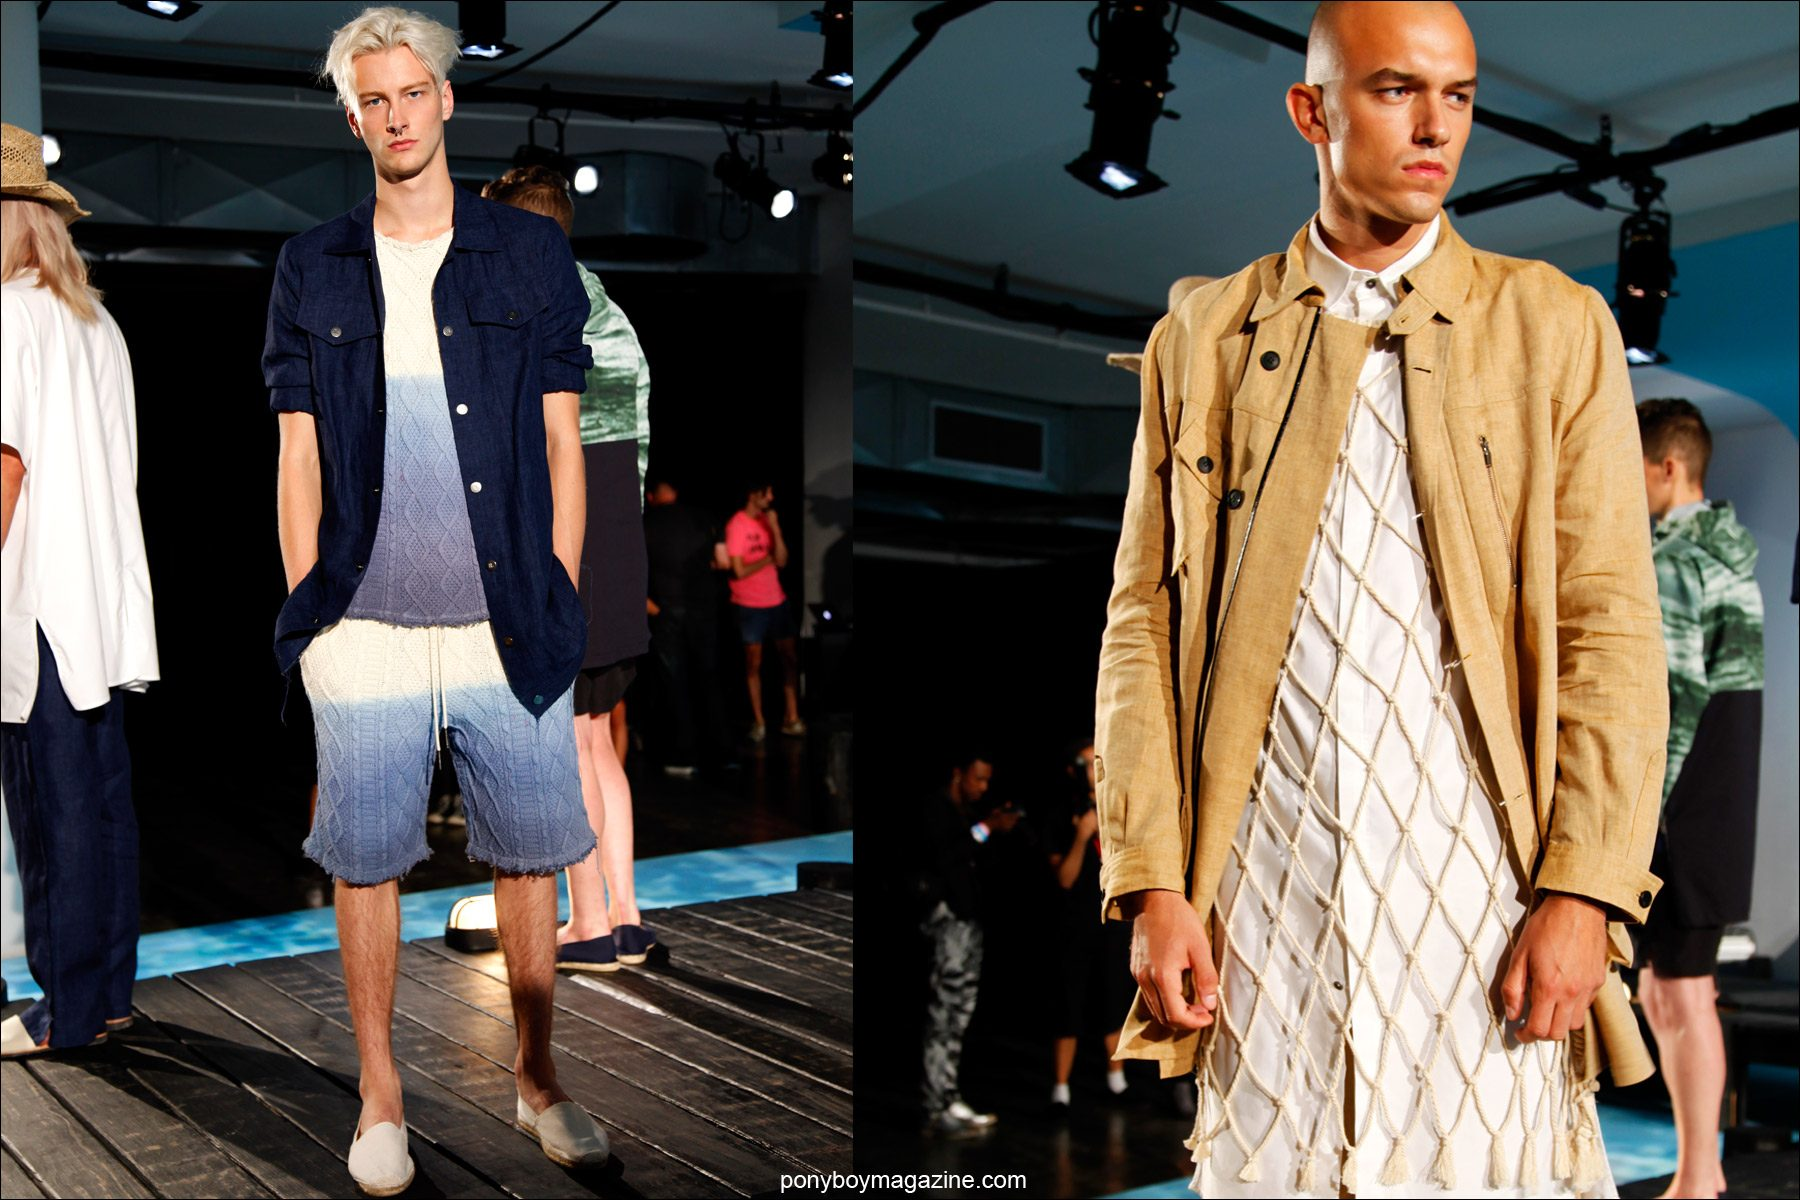 Models of the moment, Benjamin Jarvis and Adam Kaszewski photographed at Rochambeau S/S15 presentation in New York City. Photos by Alexander Thompson for Ponyboy Magazine.